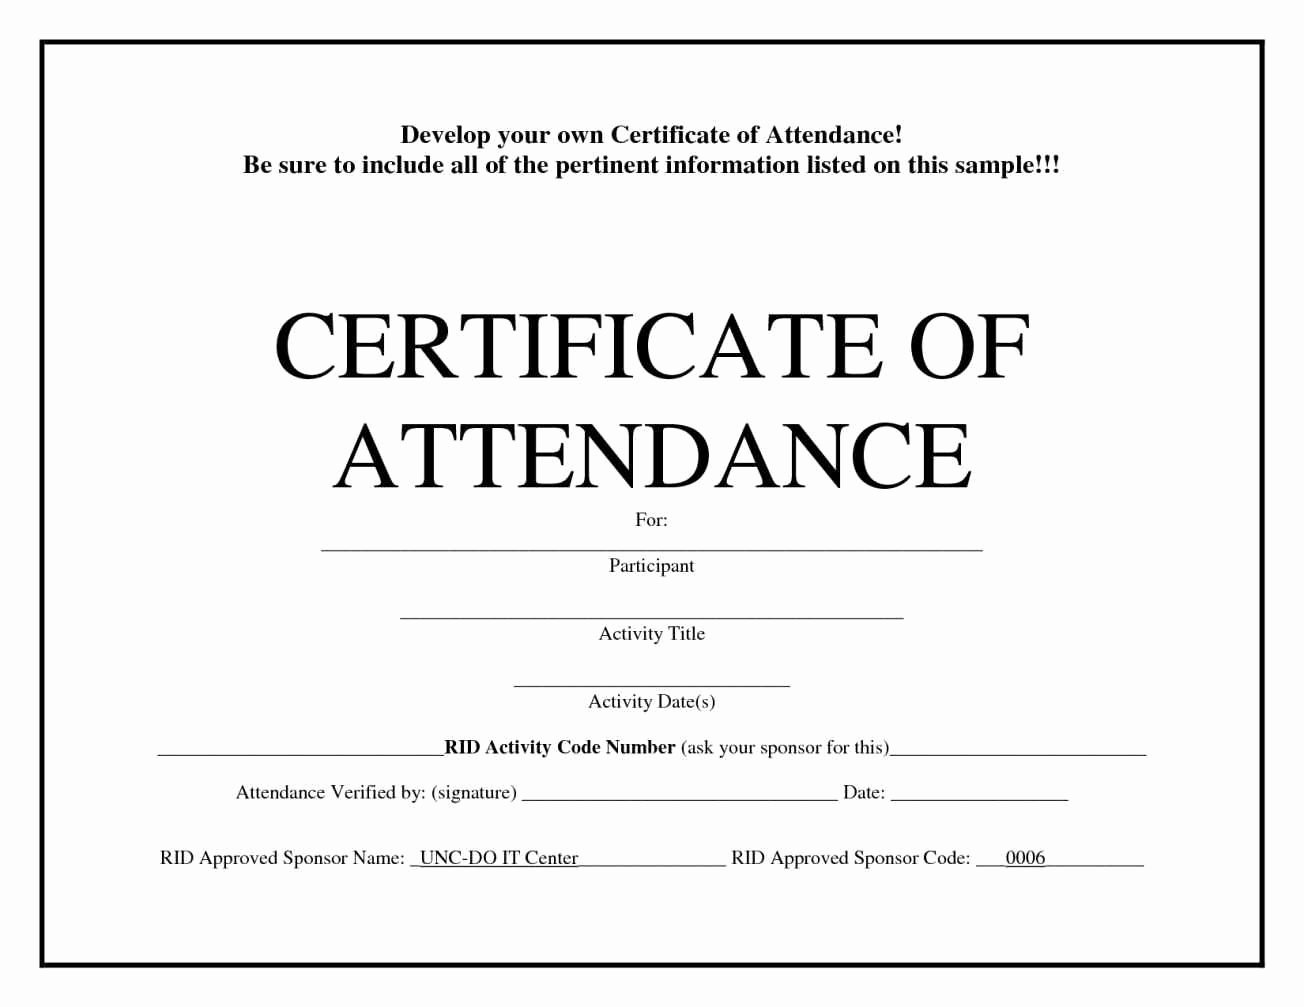 Perfect attendance Certificate Editable New Free Printable attendance Certificates Template